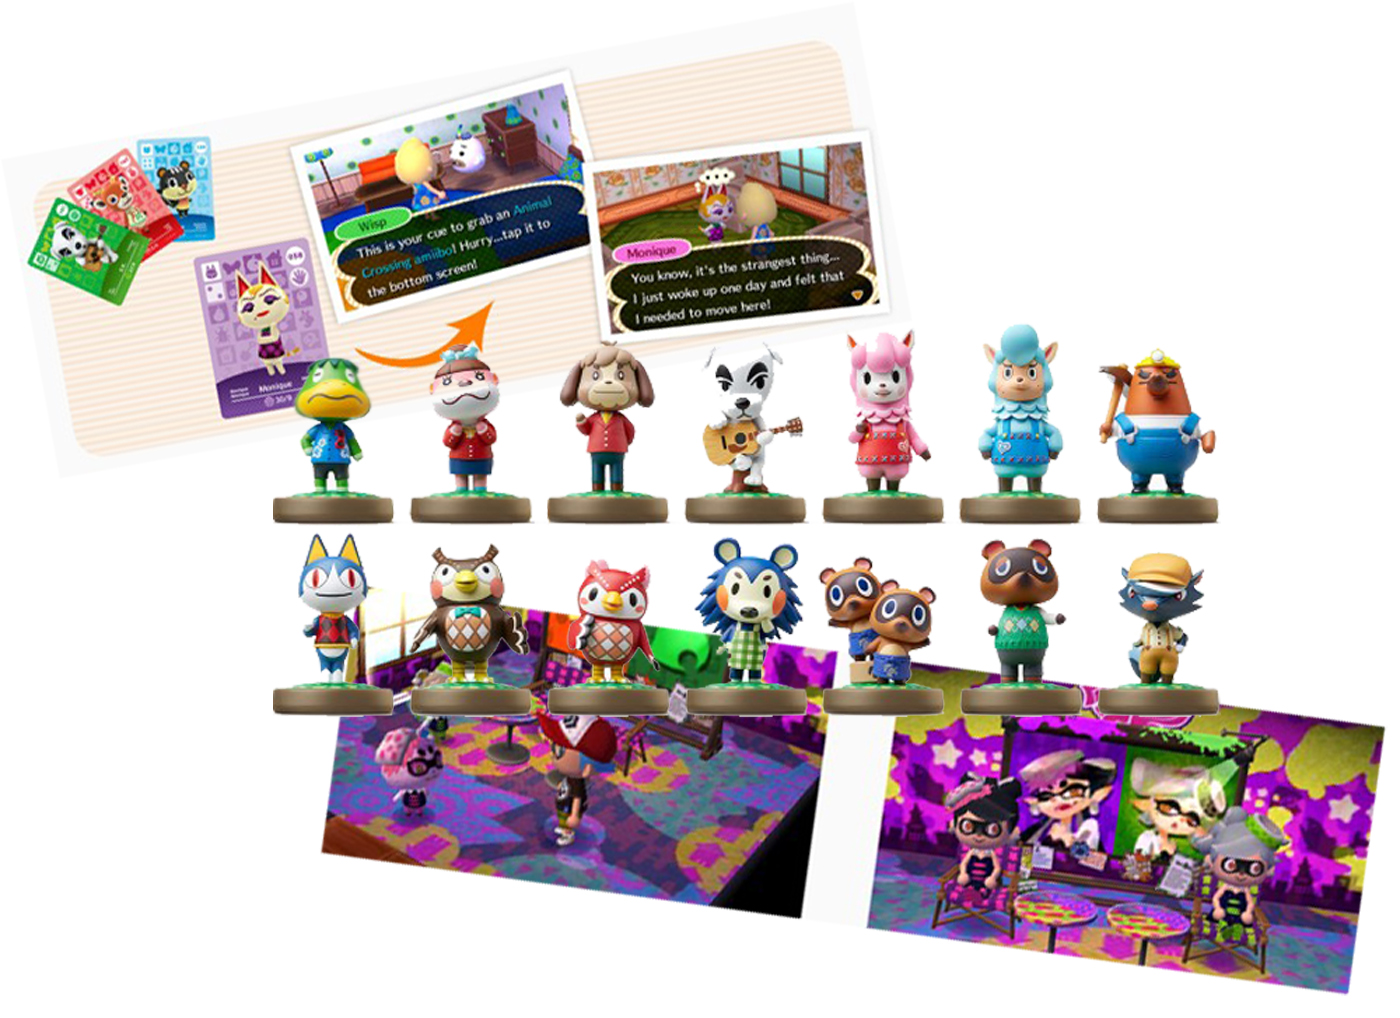 amiibo support is coming